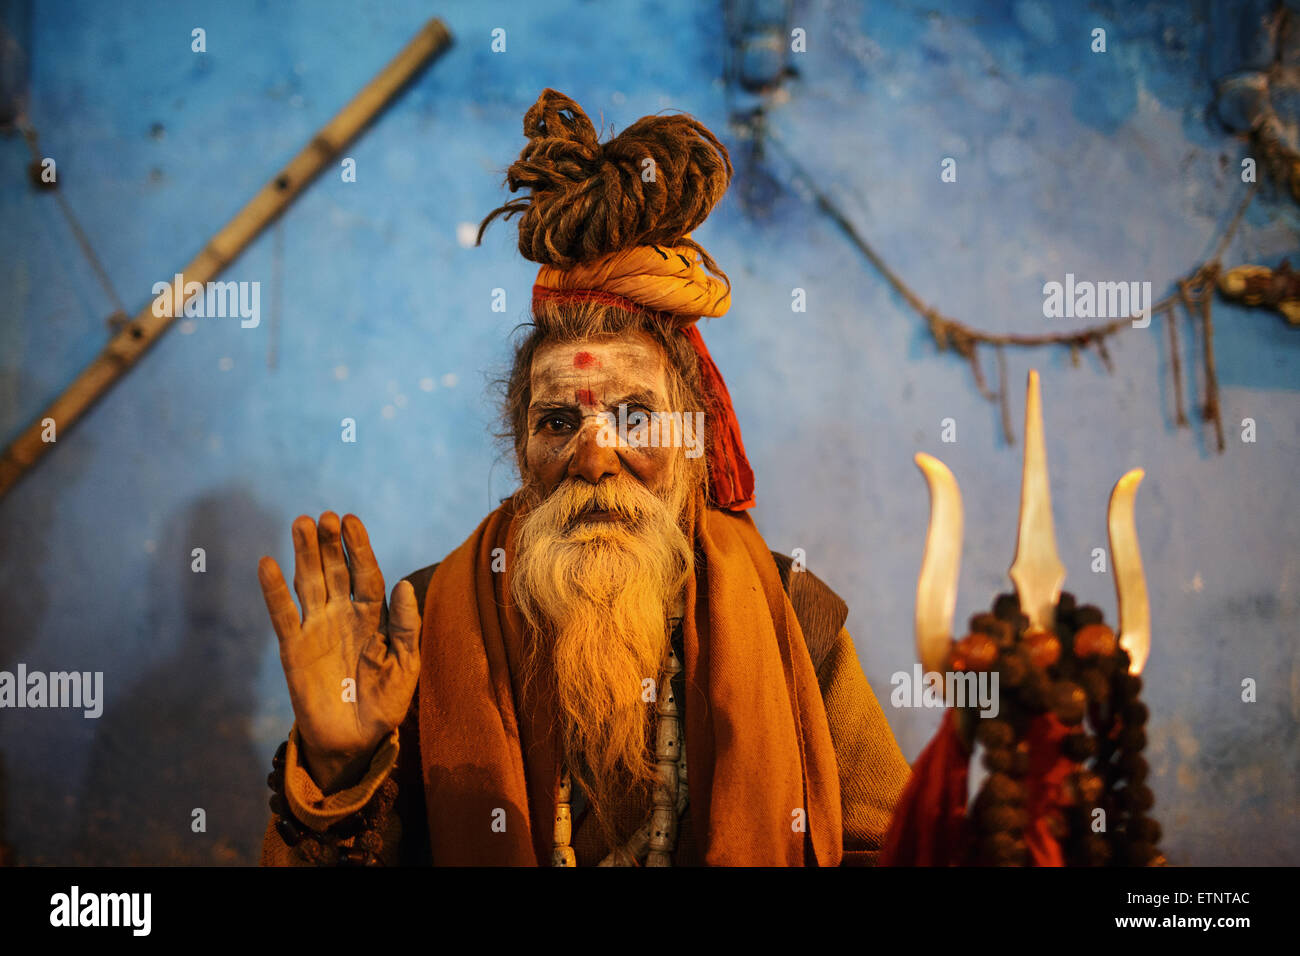 An old bearded man (Sadhu) wearing traditional outfit poses to a photo at night in Varanasi, India. - Stock Image